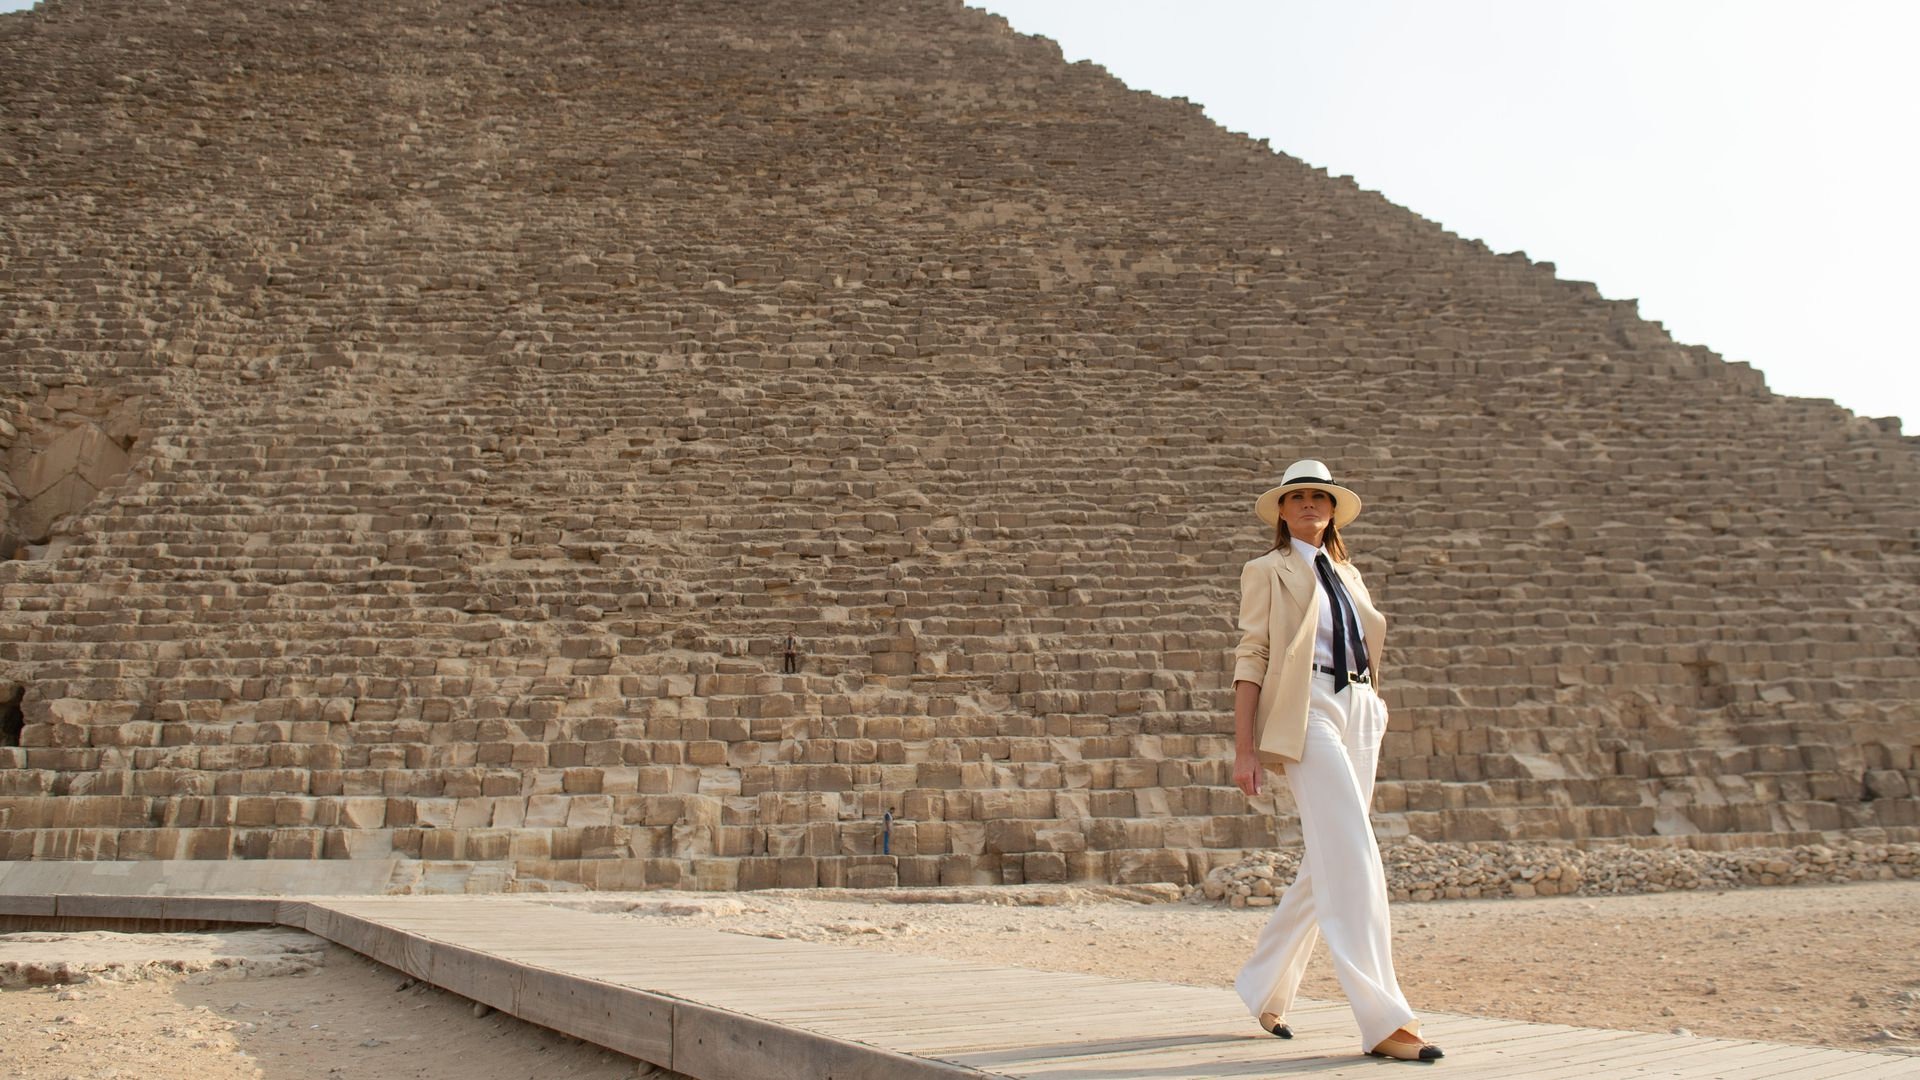 First Lady Melania Trump stands in front of the Great Pyramid in Giza, Egypt, October 6, 2018, the final stop on her 4-country tour through Africa.